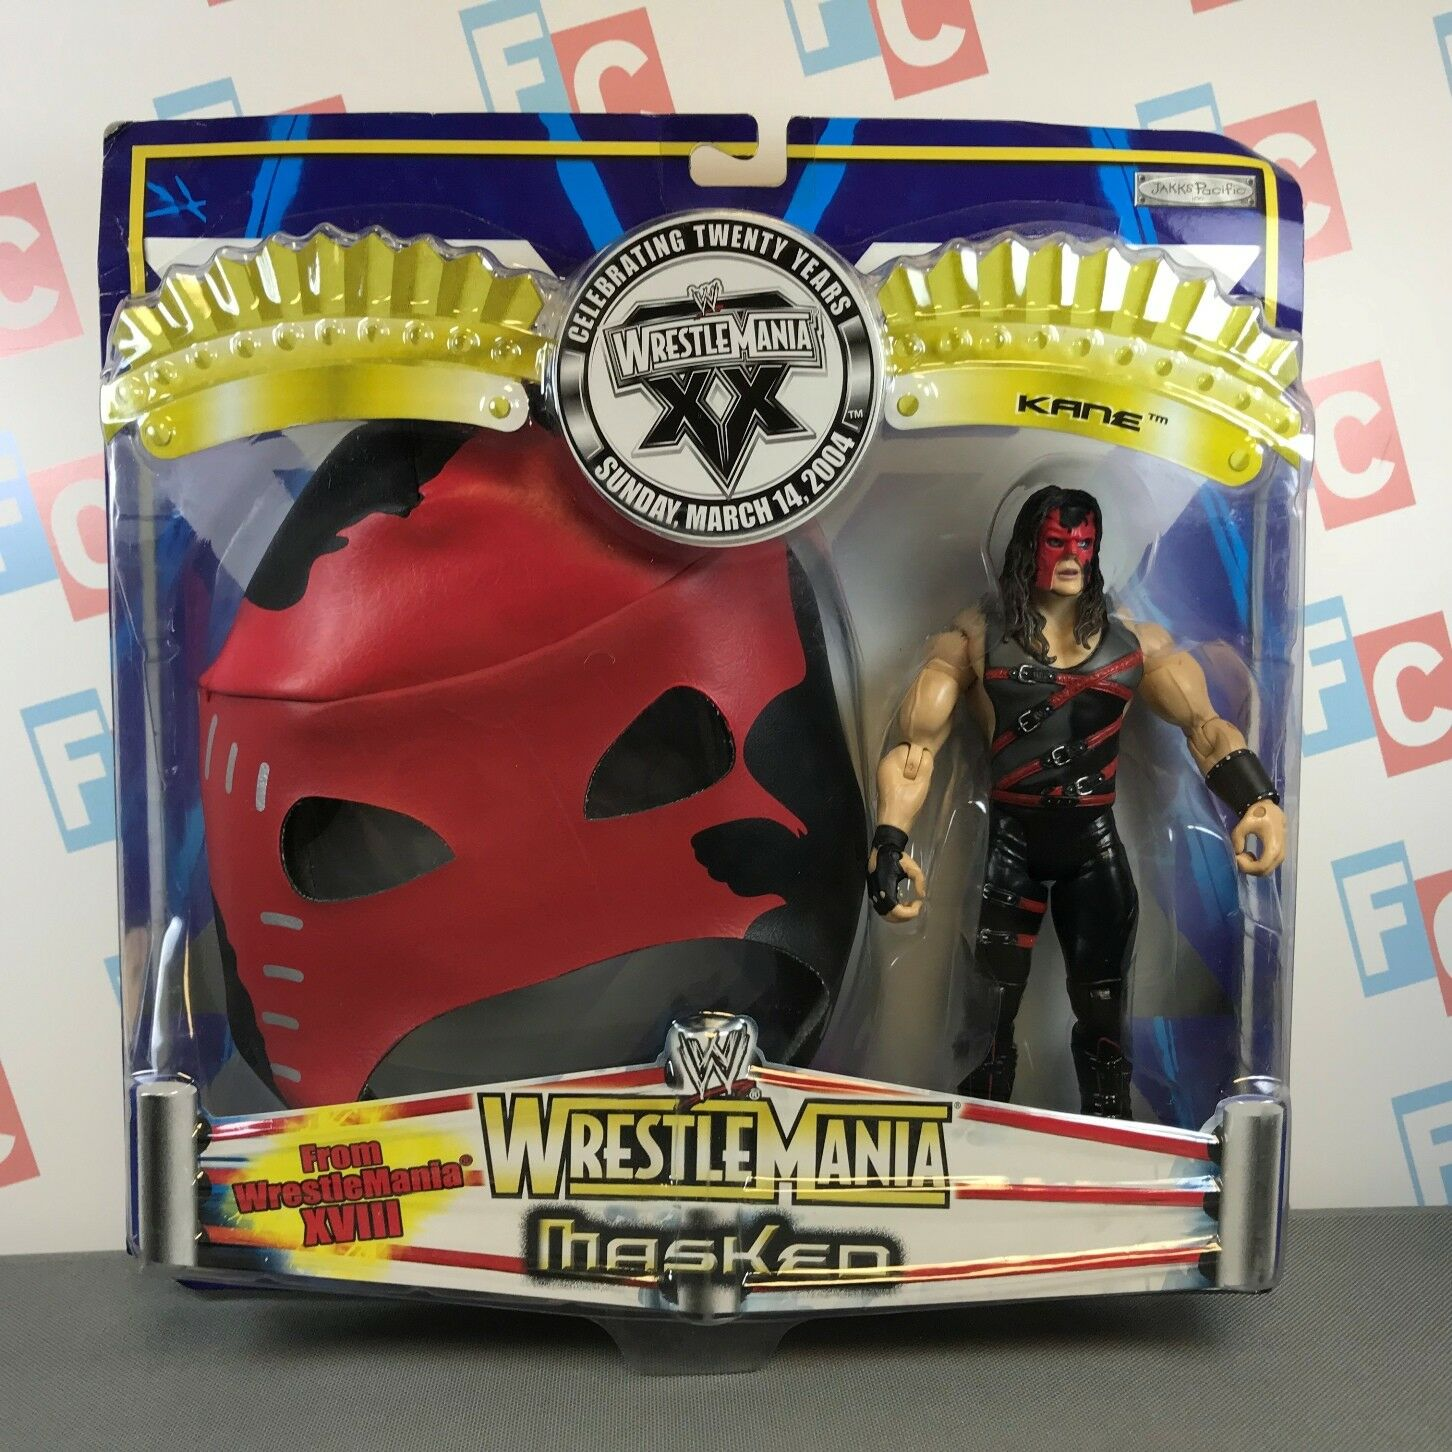 WWE Wrestling Jakks Ruthless Aggression Wrestlemania 20 Masked Kane Figure